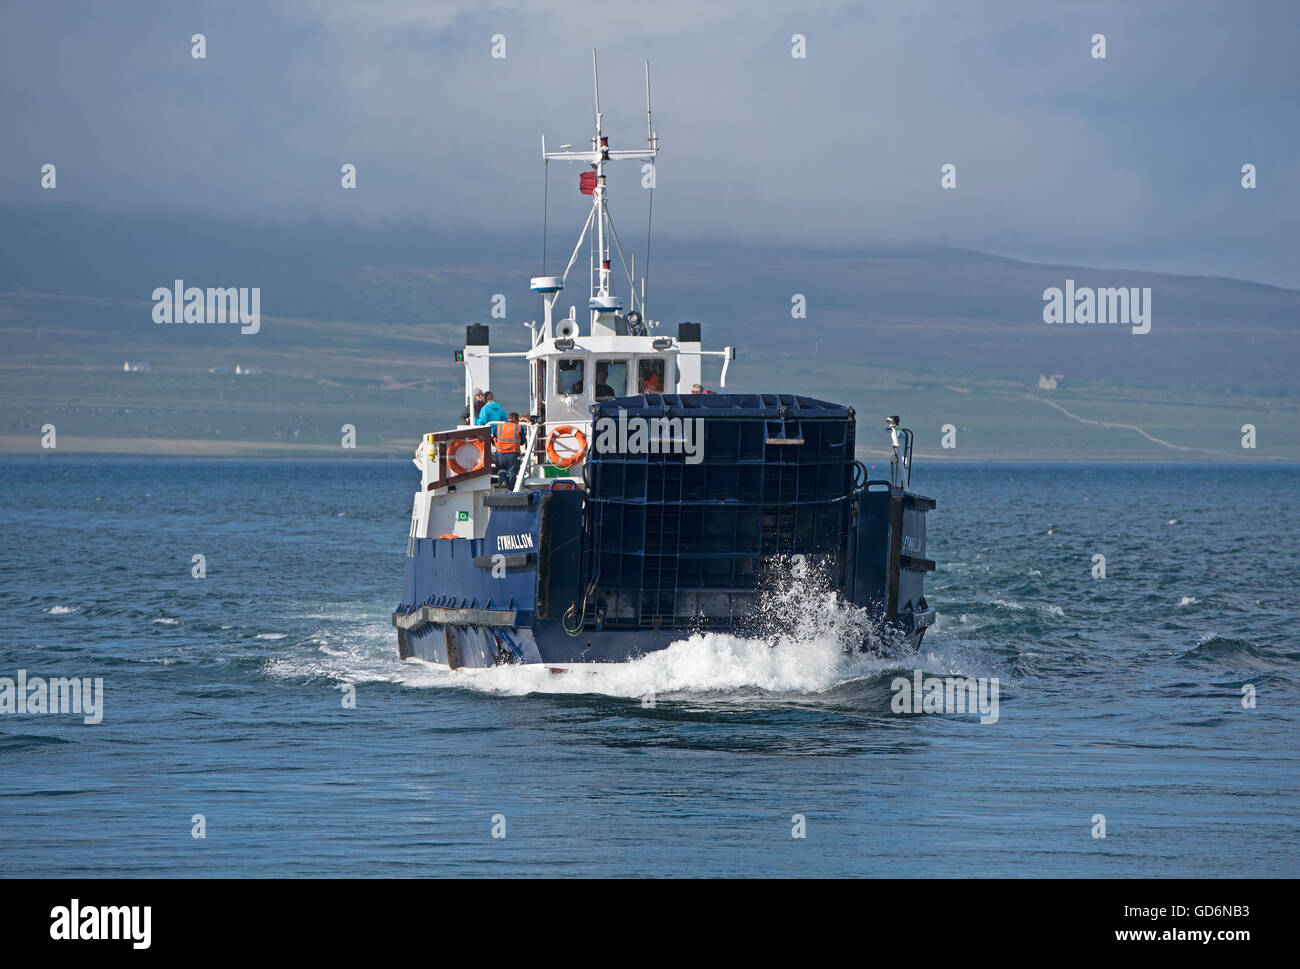 Rousay Ferry 'Eynhallow' sailing across from Brinain to Tingwall on the North shore of the Orkney Isles - Stock Image